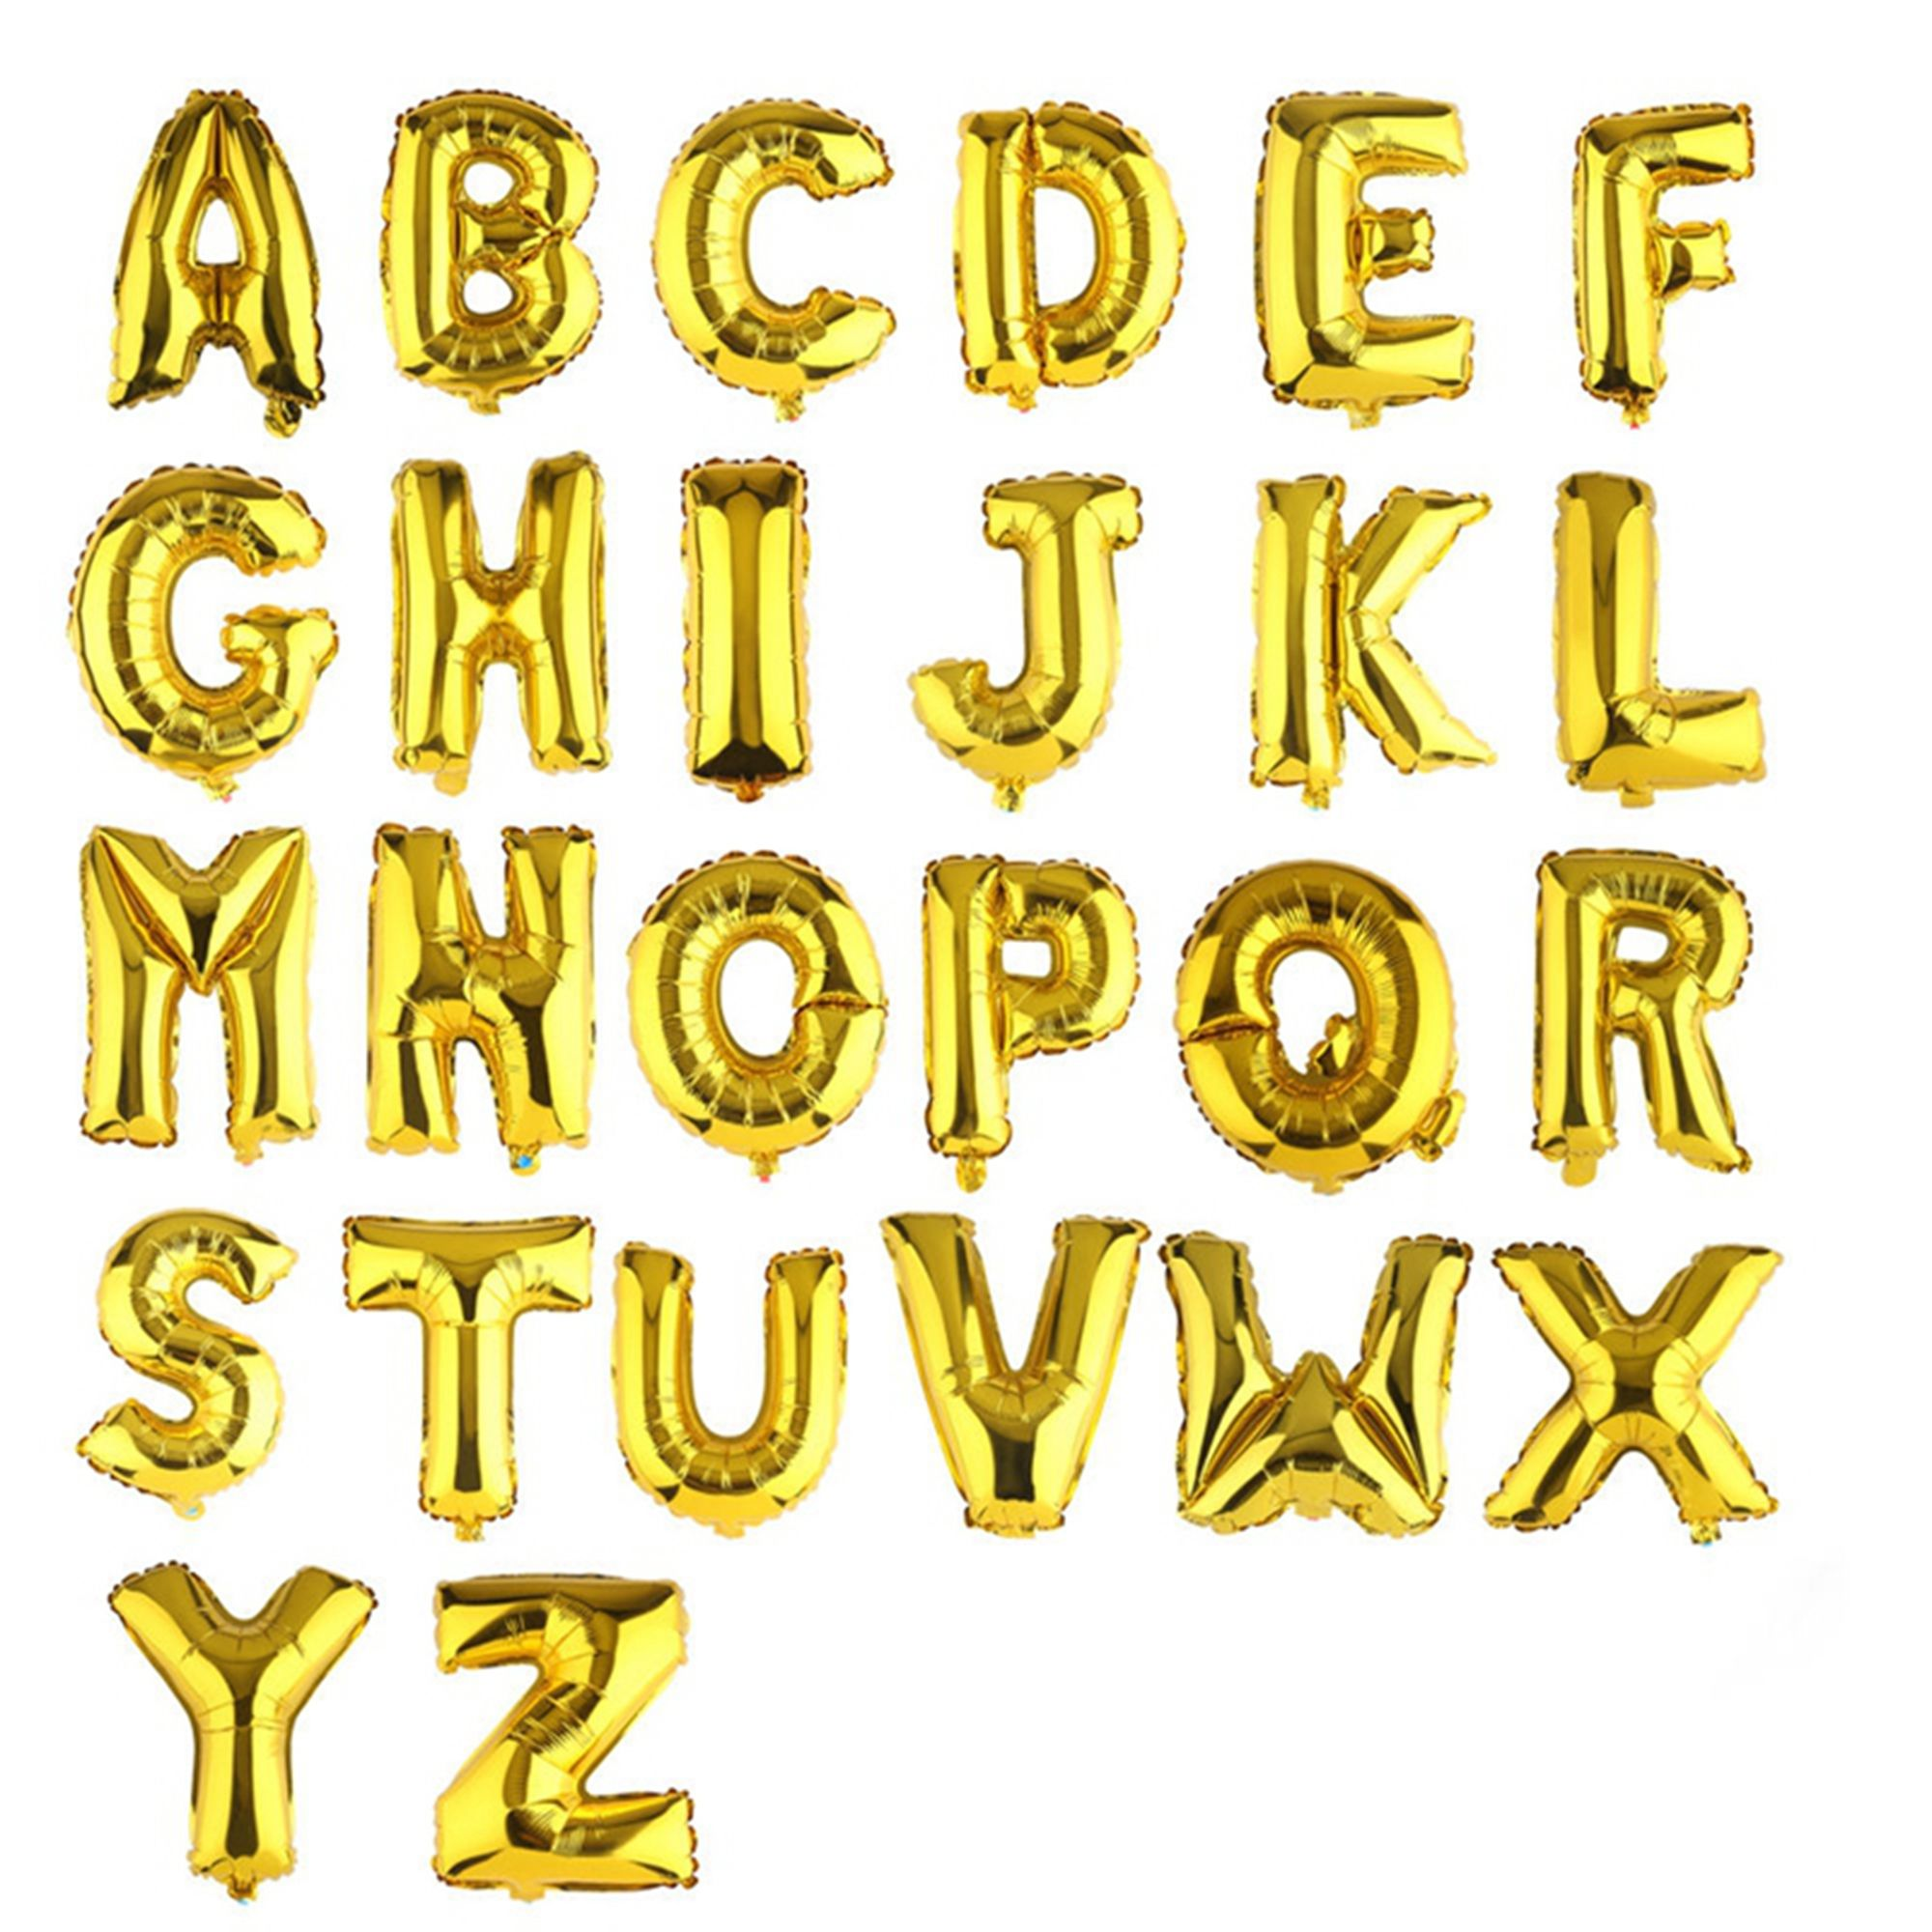 Party Occasions In 2020 Letter Balloons Helium Balloons Birthday Gold Letter Balloons